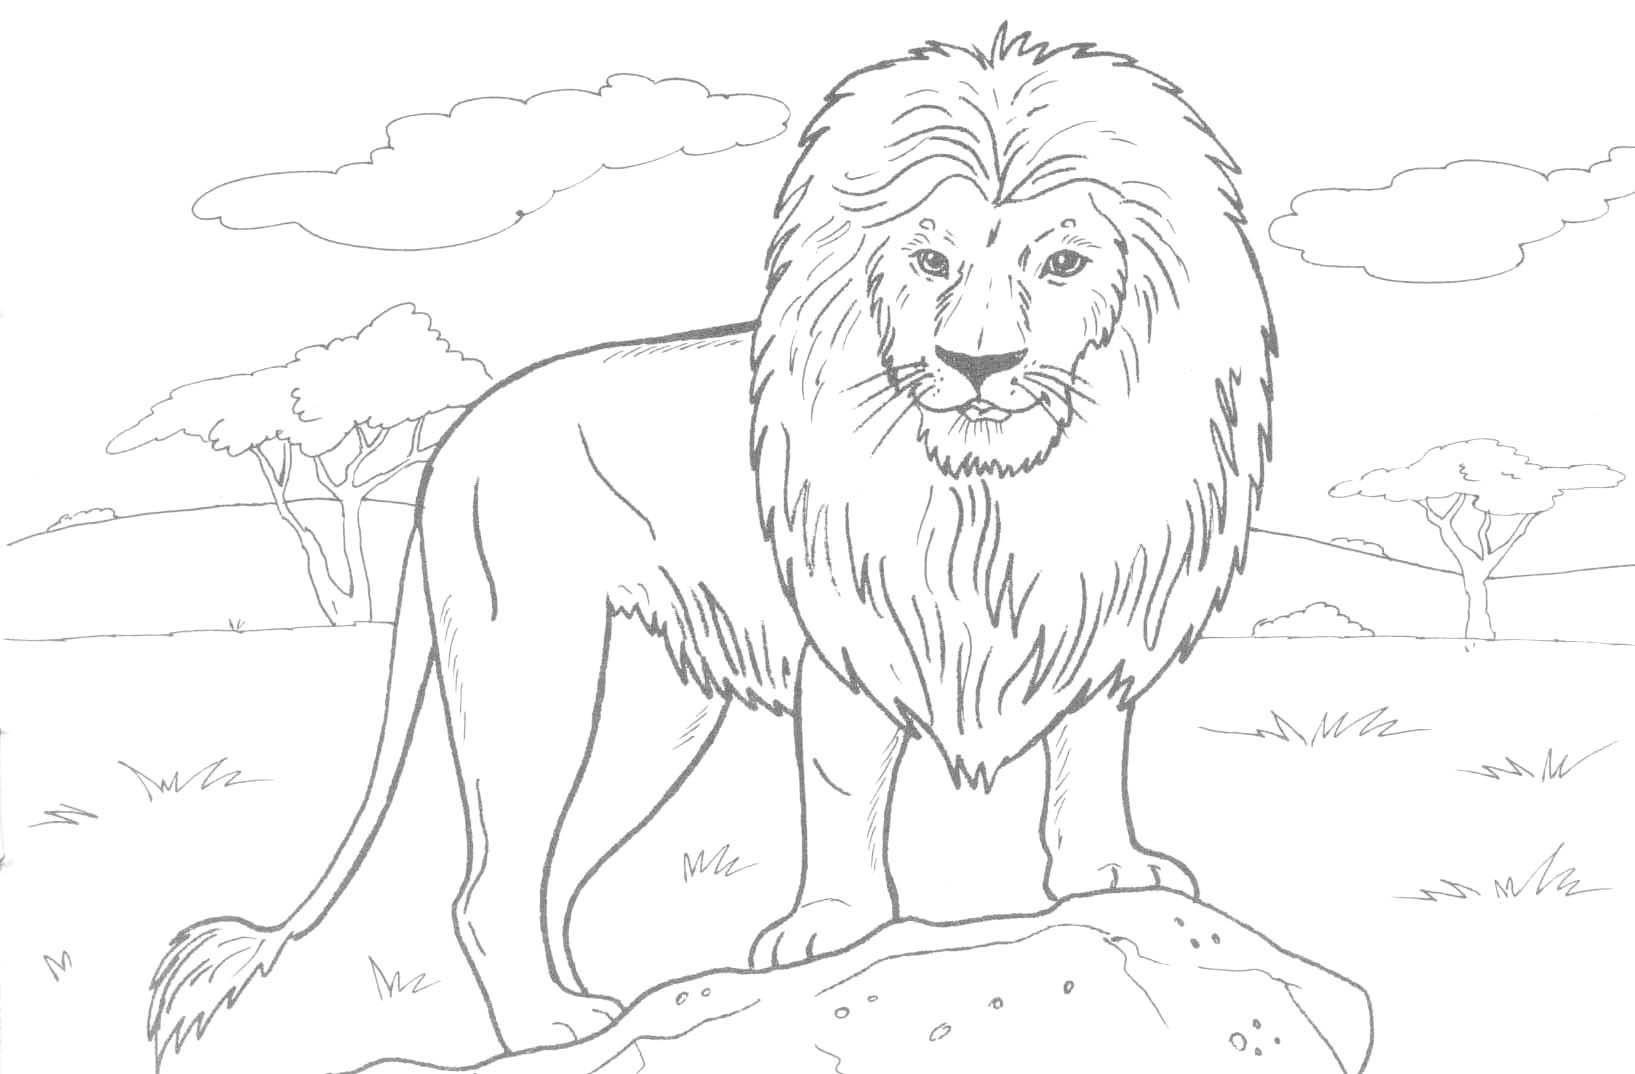 Lion Colour Drawing at GetDrawings.com   Free for personal use Lion ...